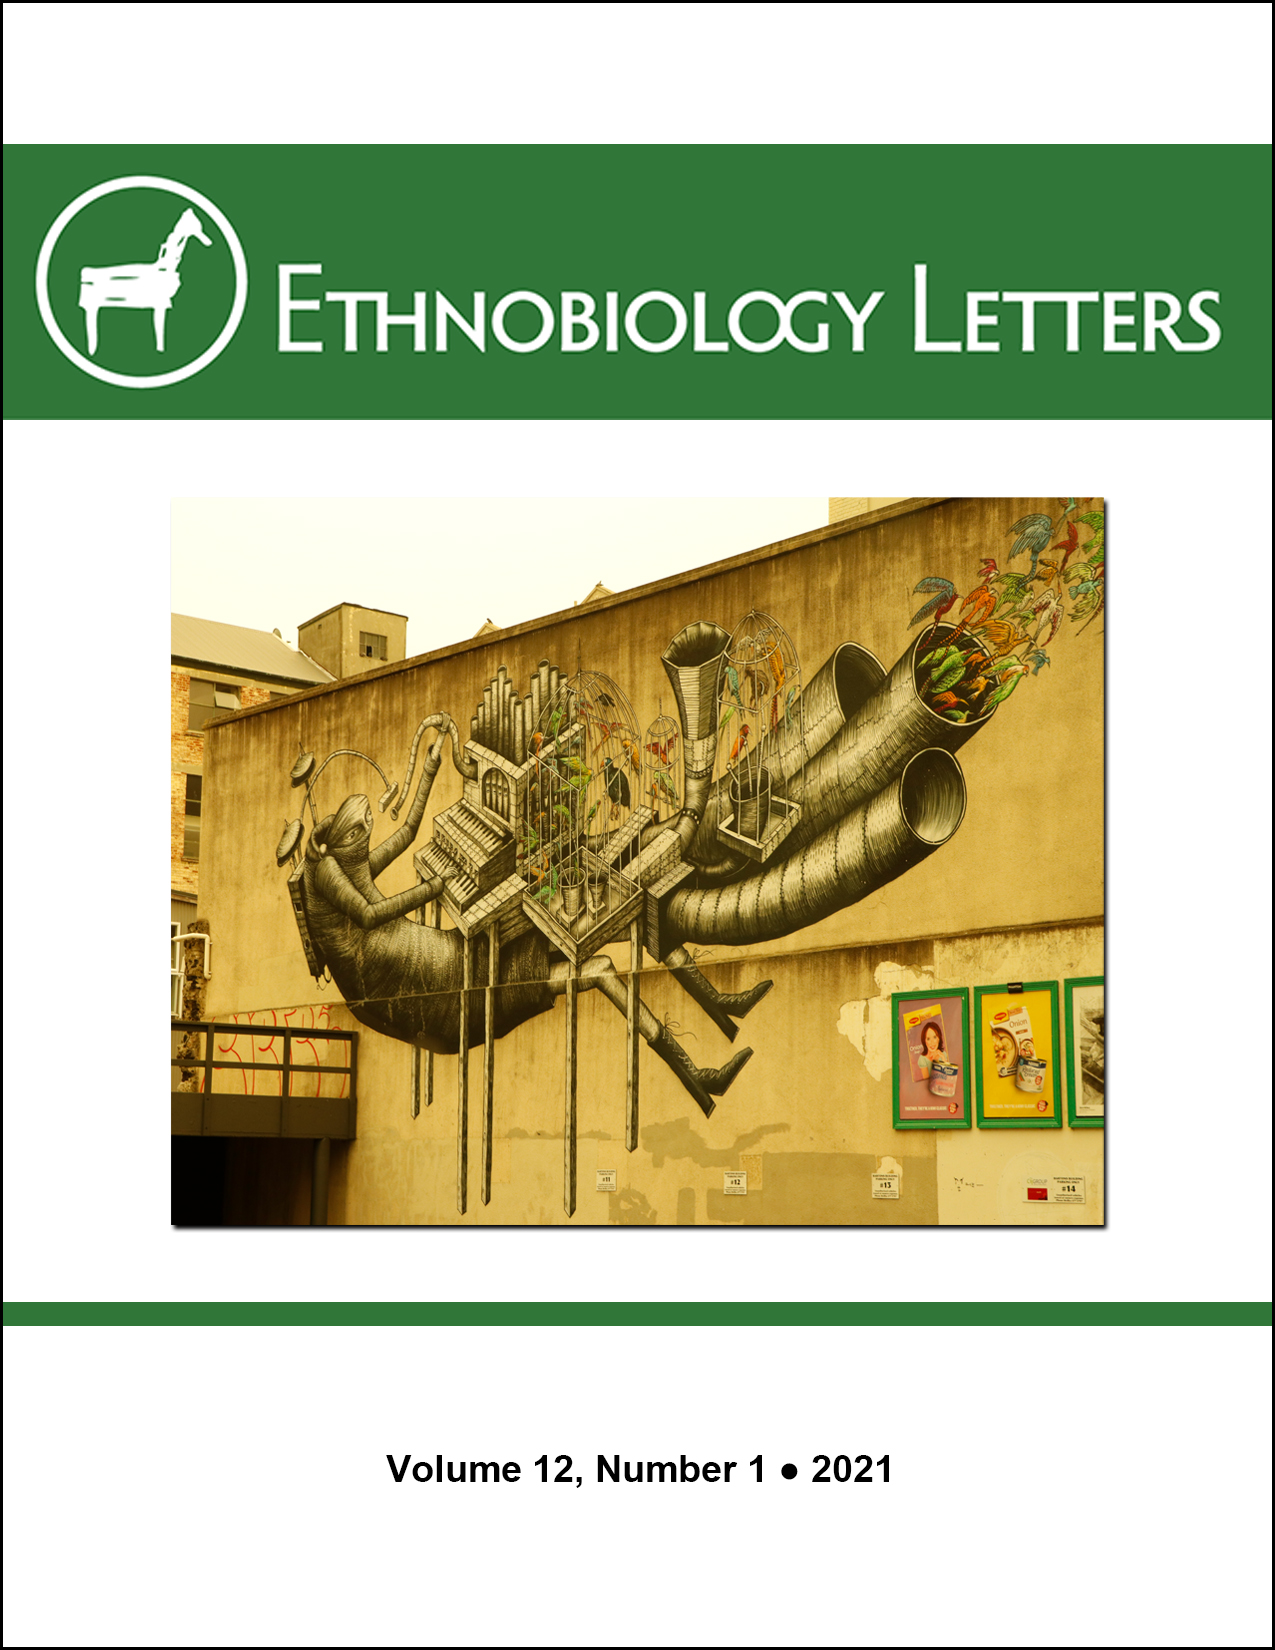 Ethnobiology Letters Cover, Volume 12, Issue 1, 2021